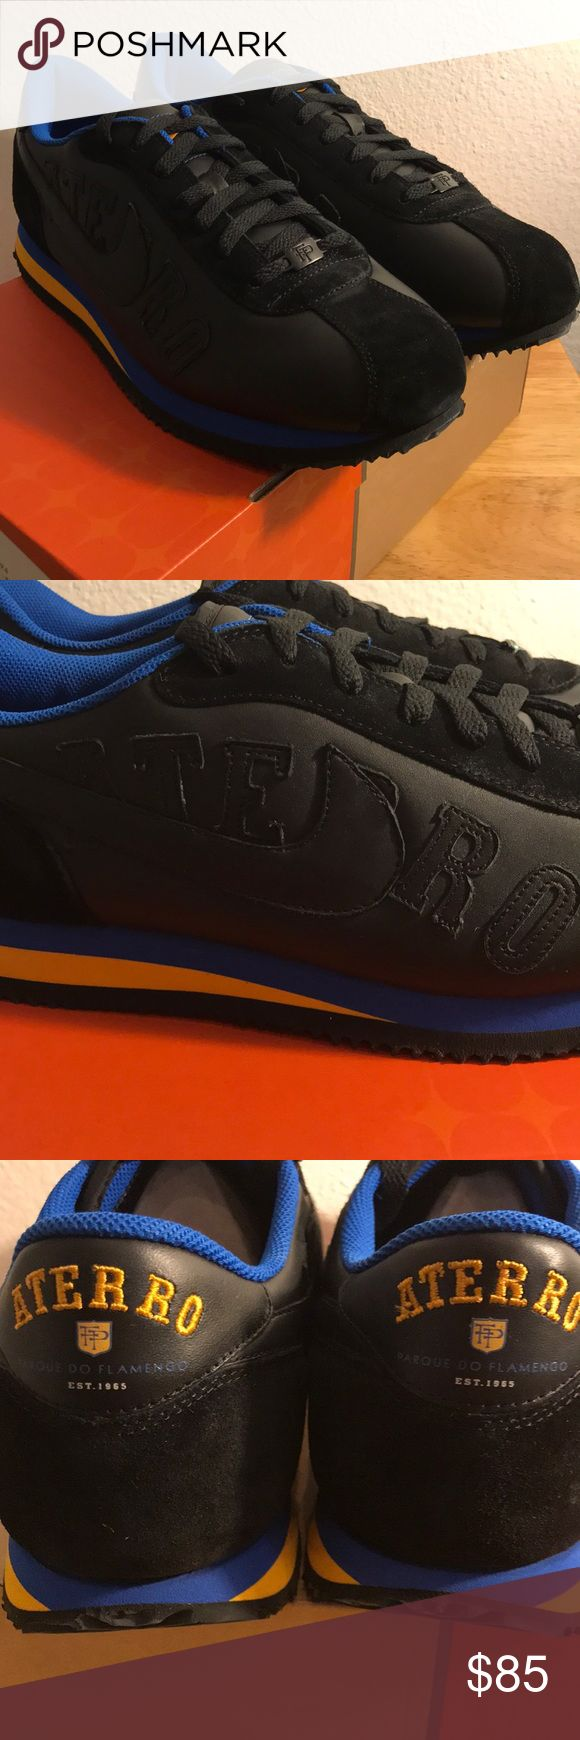 Nike Cortez LE Aterro Size 12 Nike Cortez LE Aterro Size 12, Brand New, Never Worn or Used, 🎄WILL SHIP IN ONE DAY🎄All bundles of 2 or more receive 20% off. Closet full of new, used and vintage Vans, Skate and surf companies, jewelry, phone cases, shoes and more. Nike Shoes Athletic Shoes